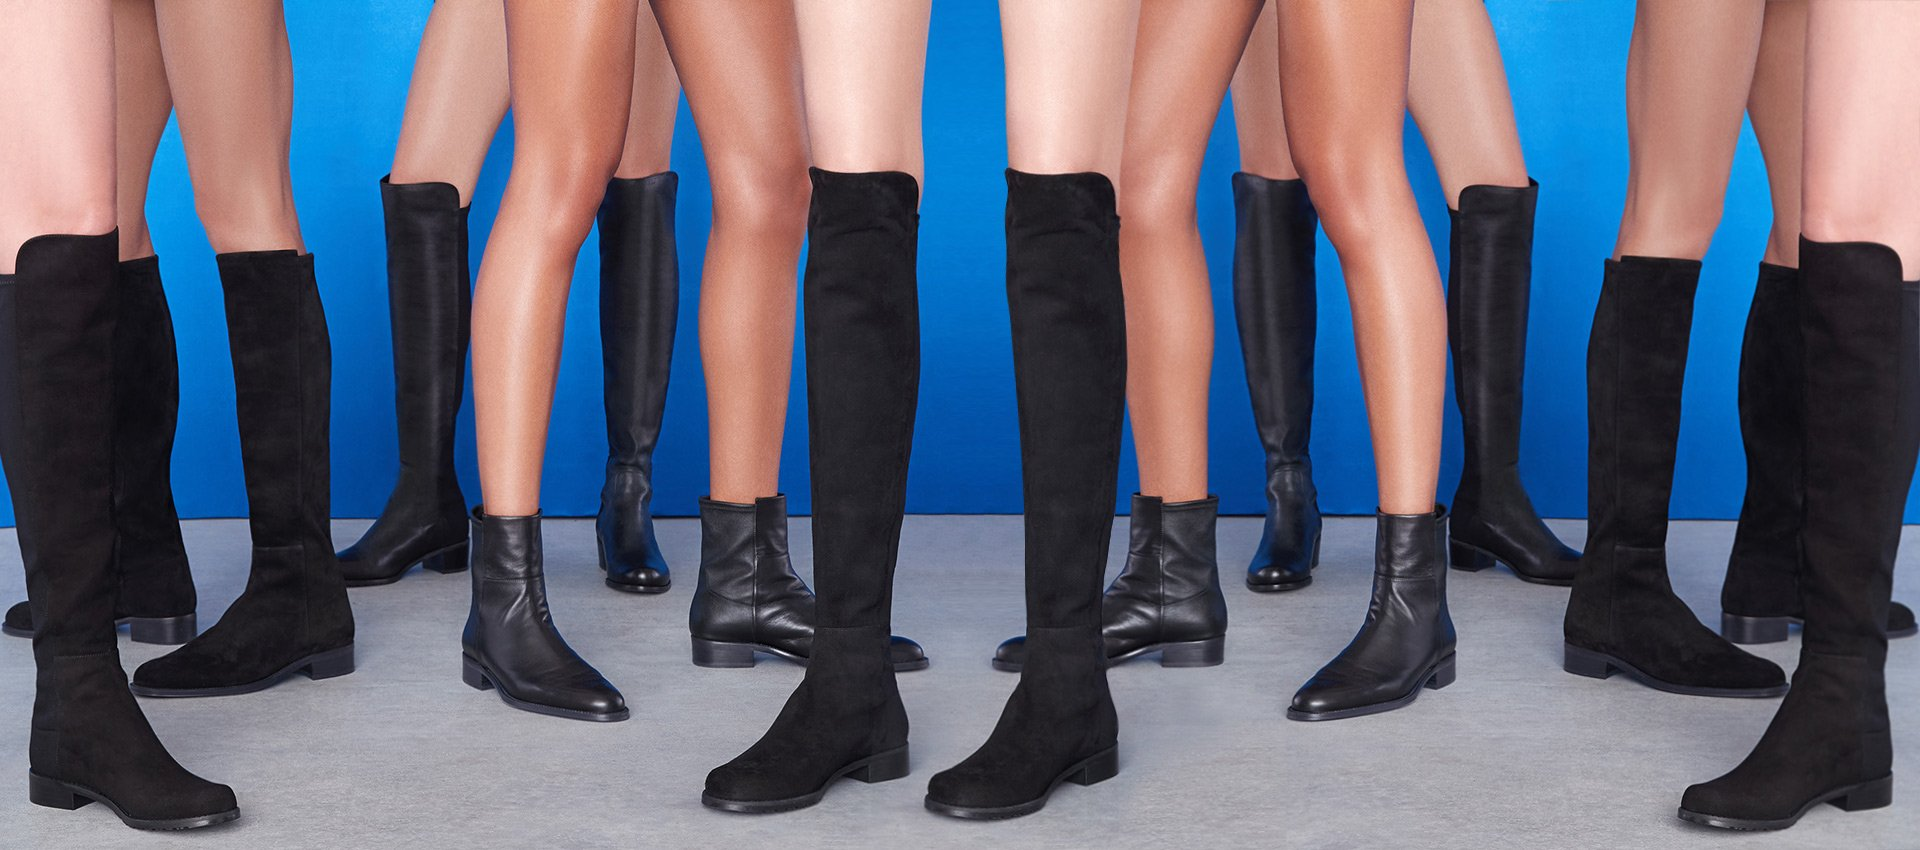 Introducing the Boot Guide & Shop Designer Shoes and Boots | Stuart Weitzman Europe